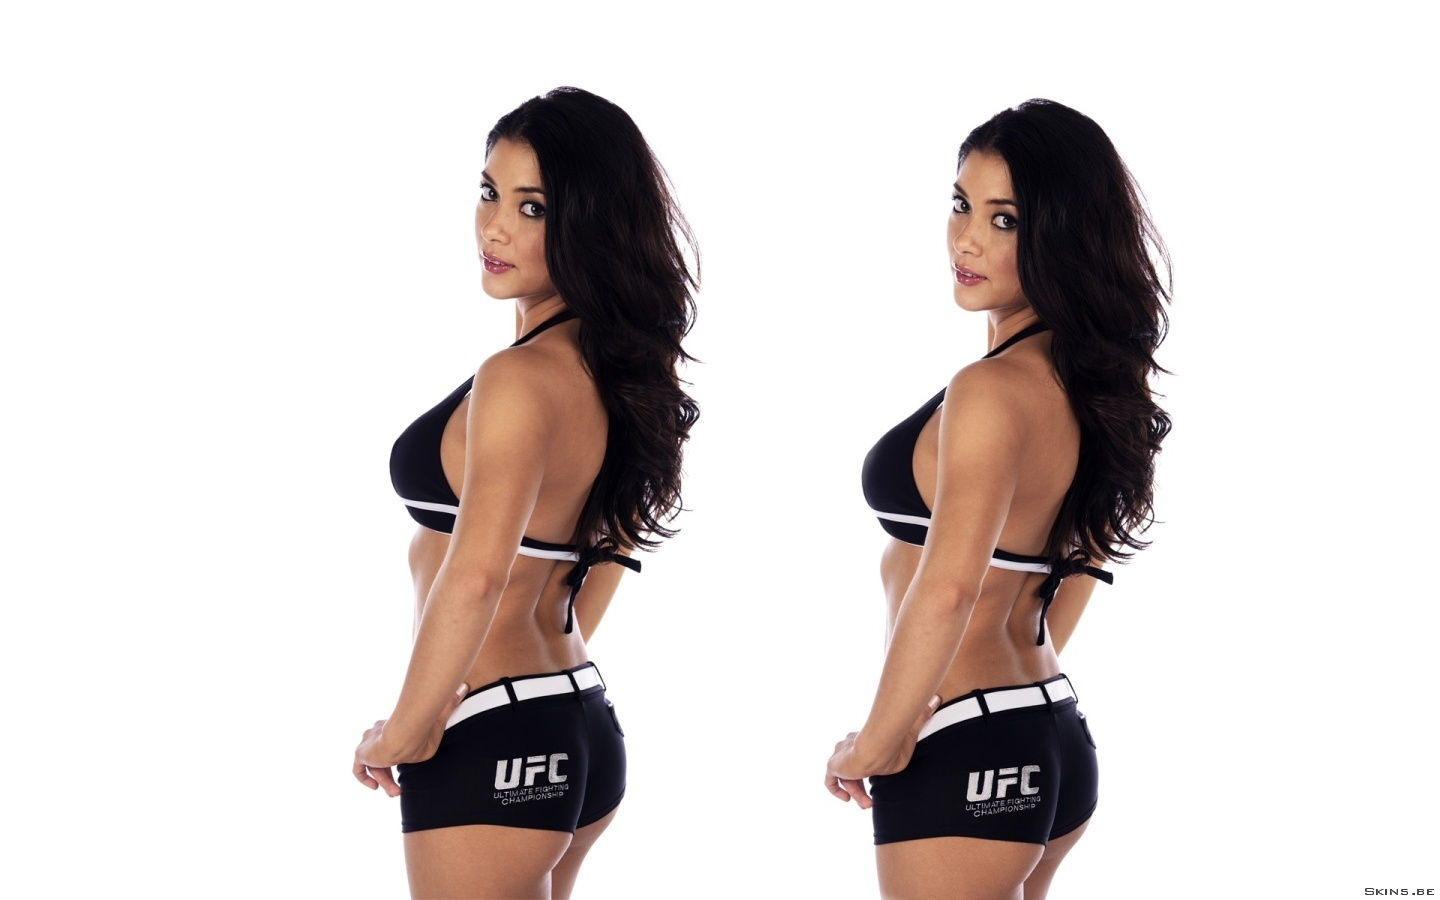 http://2.bp.blogspot.com/-ggi6RsWTceM/T8qabIUvNrI/AAAAAAAAACc/5yD-tFsoNtk/s1600/arianny+celeste+model+ufc+ultimate+fighting+championship+mma+mixed+martial+arts+wallpaper+background.jpg